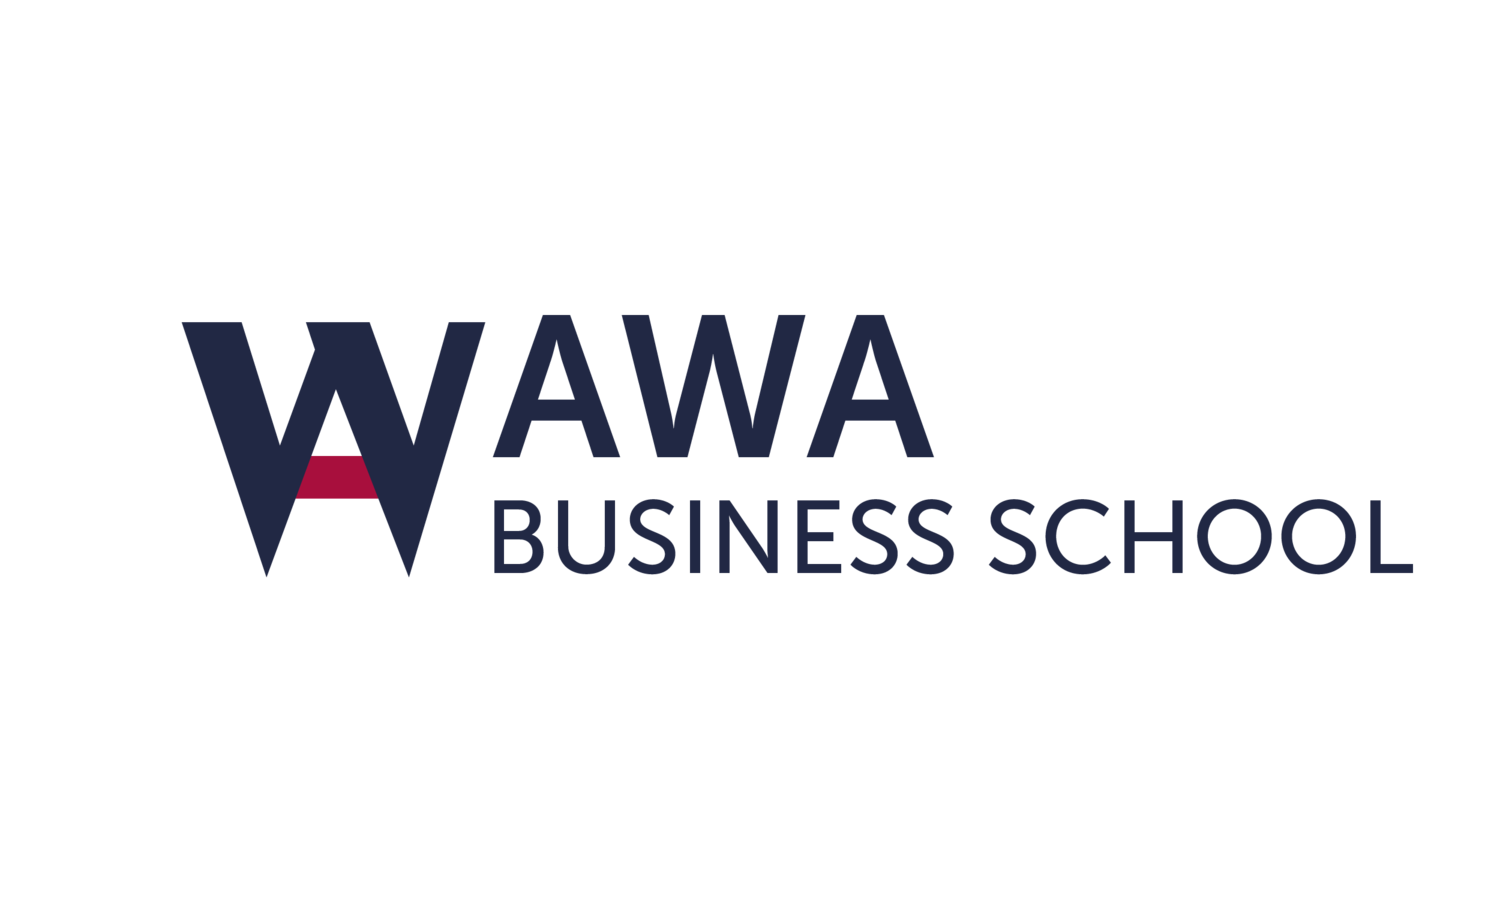 Awa Business School